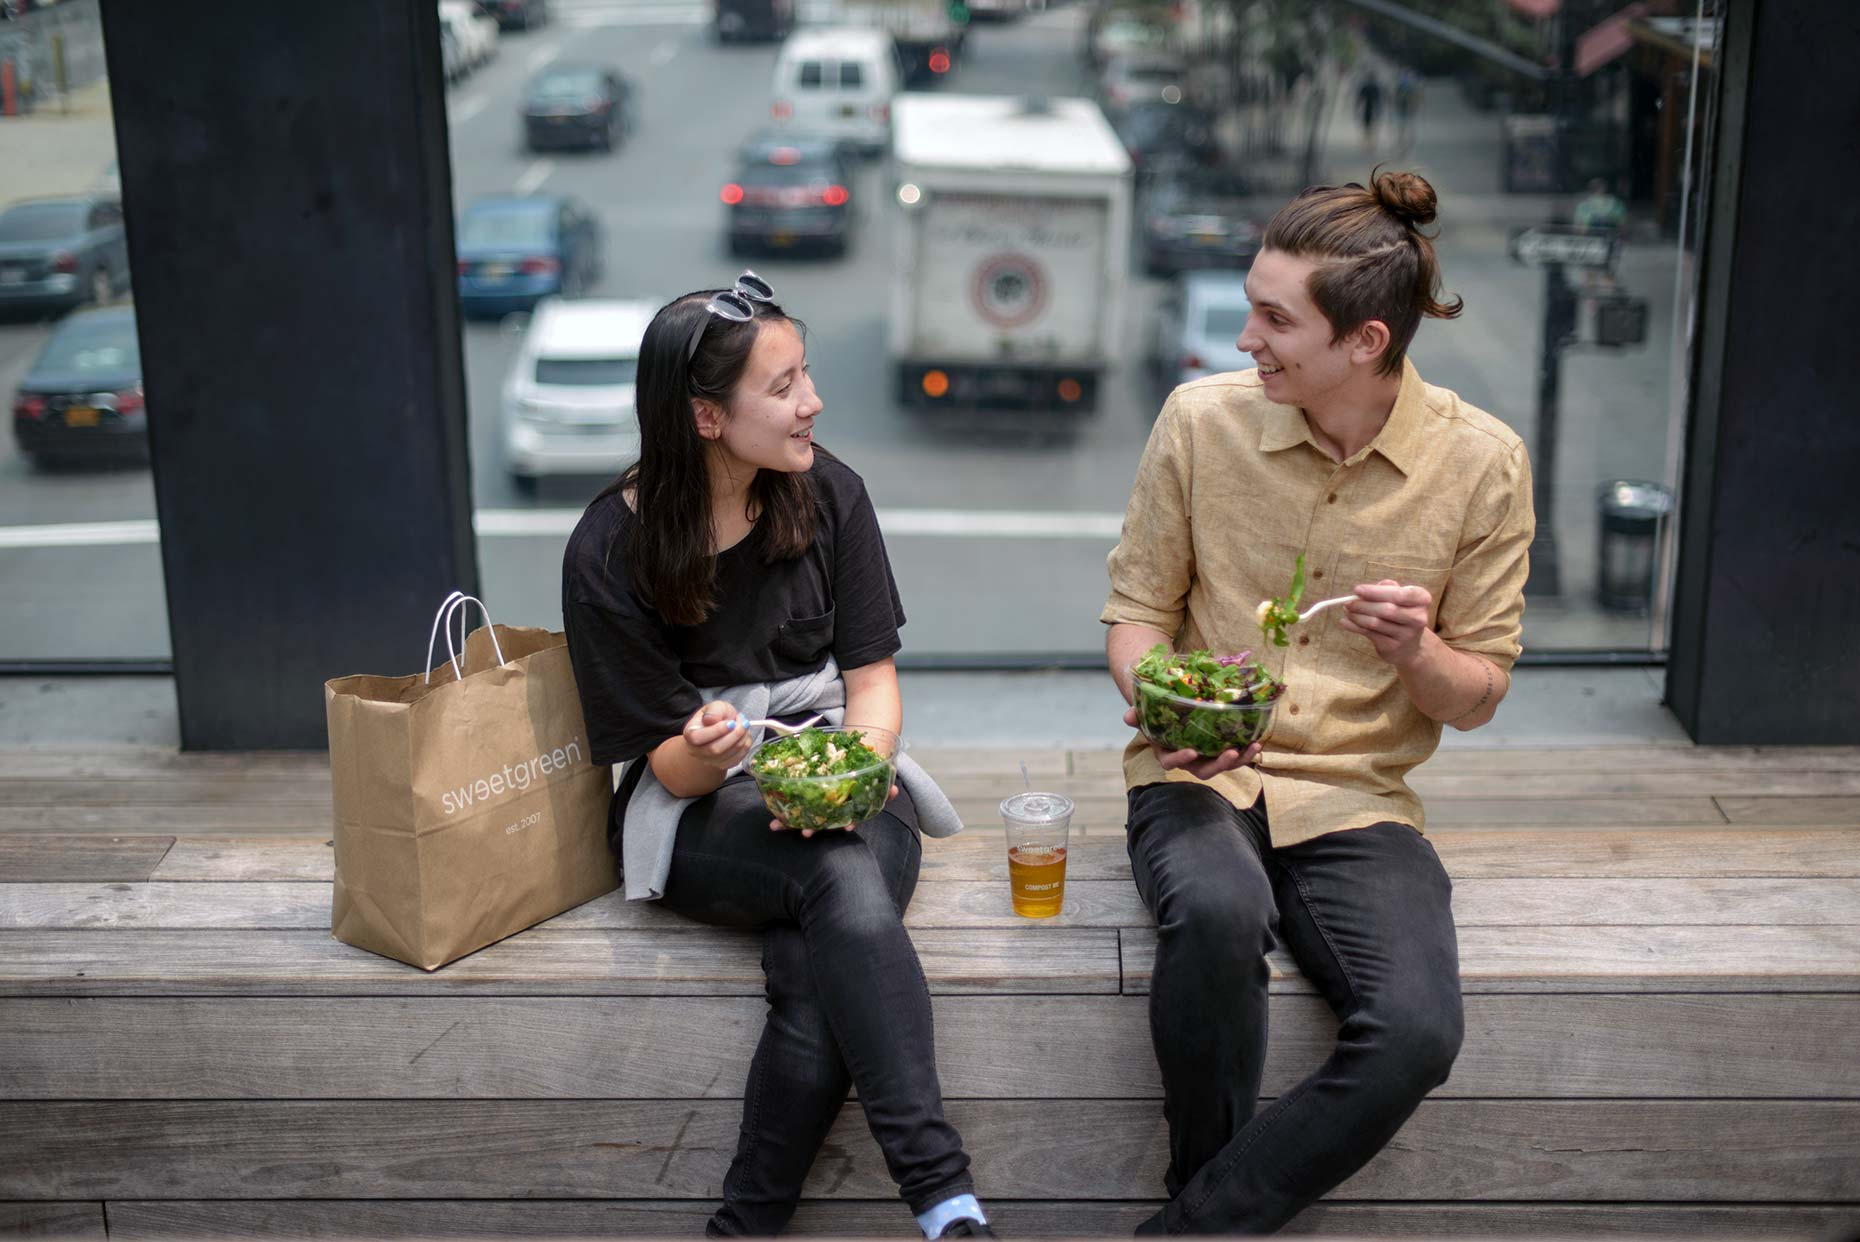 Summer lifestyle media campaign for sweetgreen. Photographed 2015 in Manhattan.